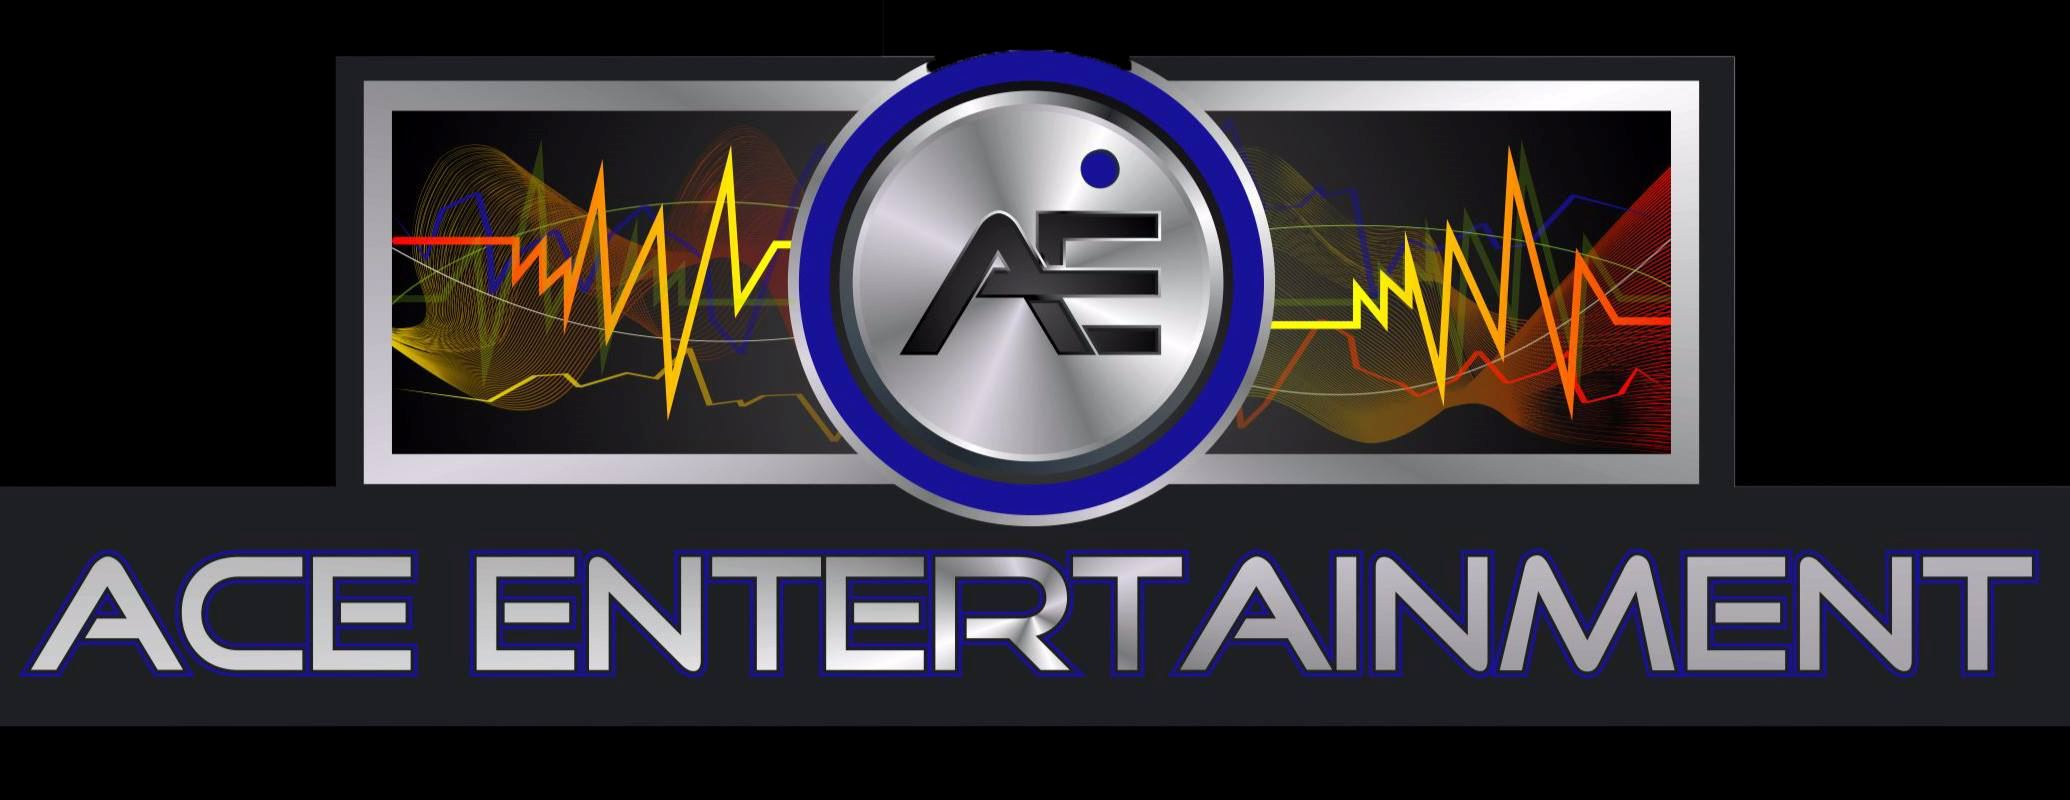 Ace Entertainment - 1